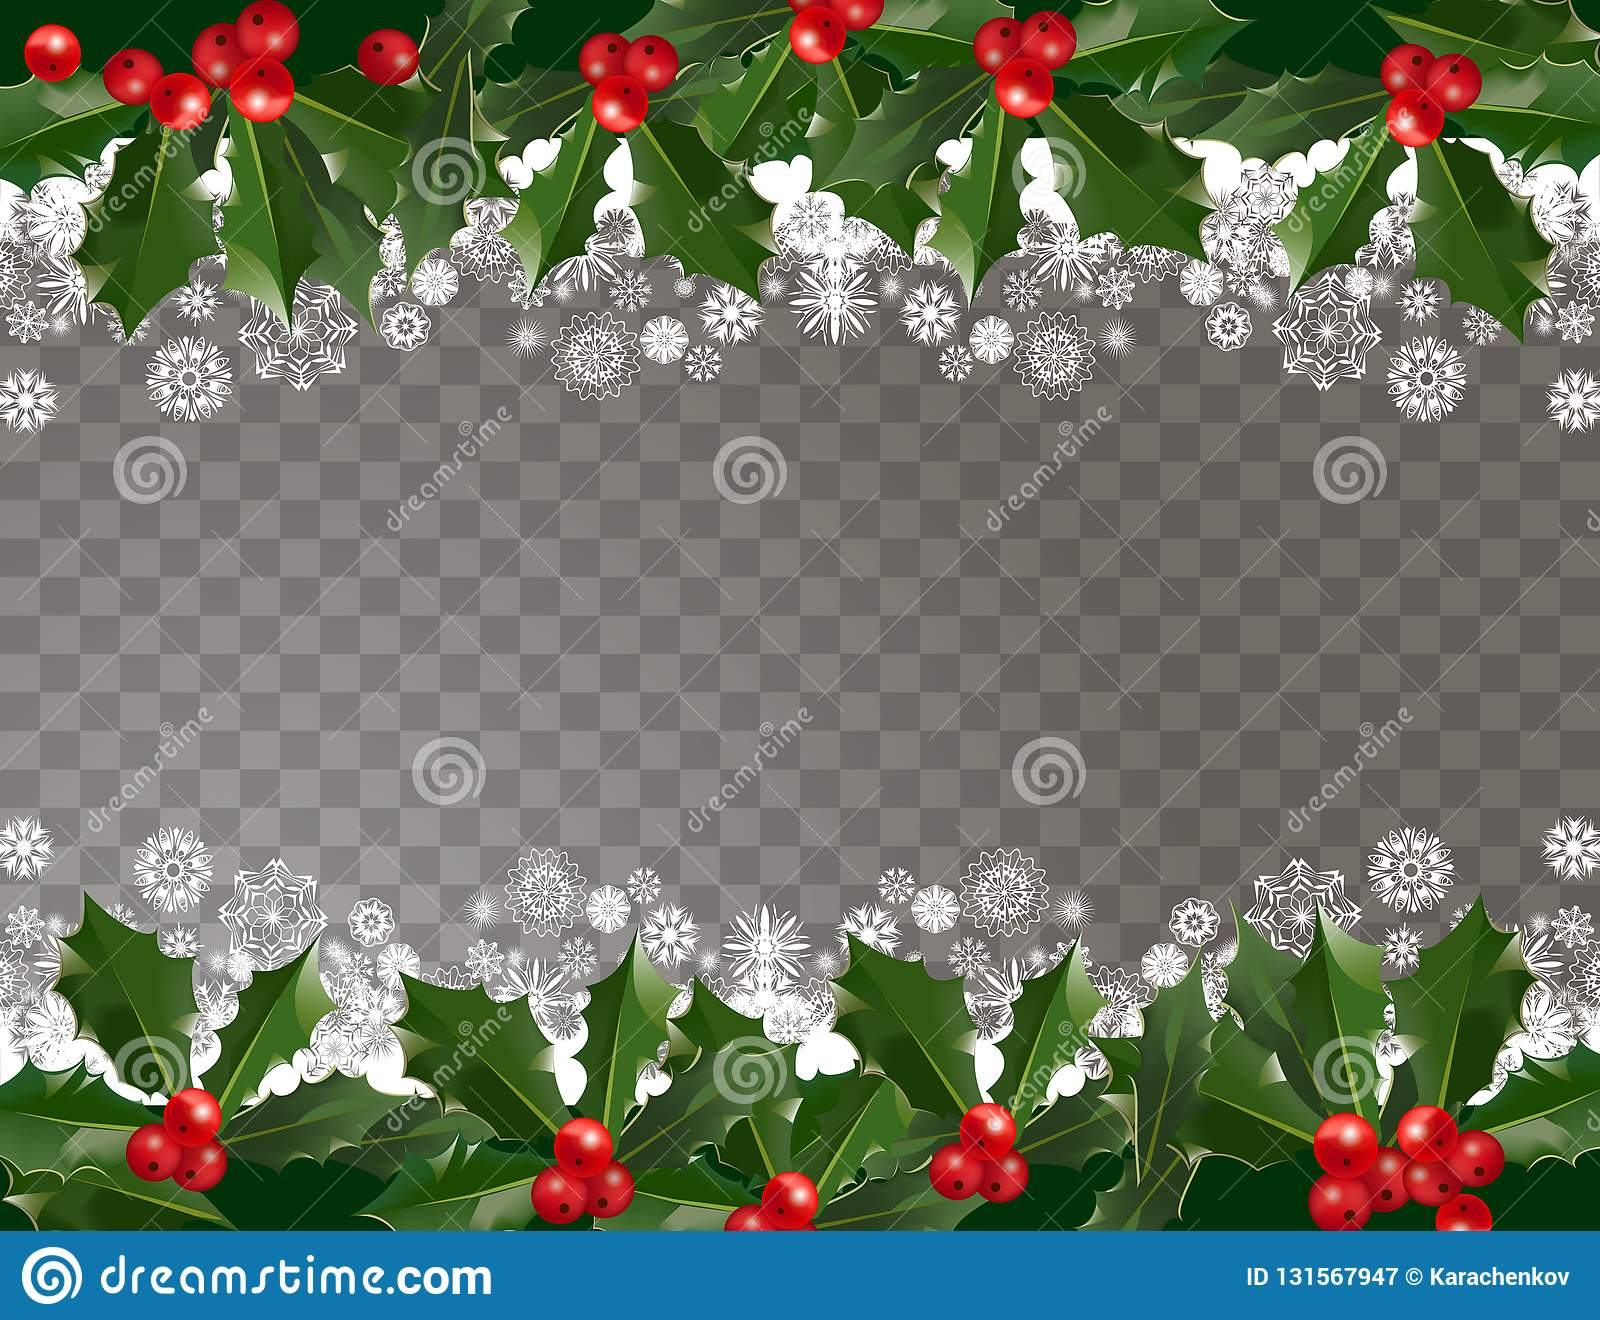 Merry Christmas And Happy New Year Garland Pattern Border With Holly ...